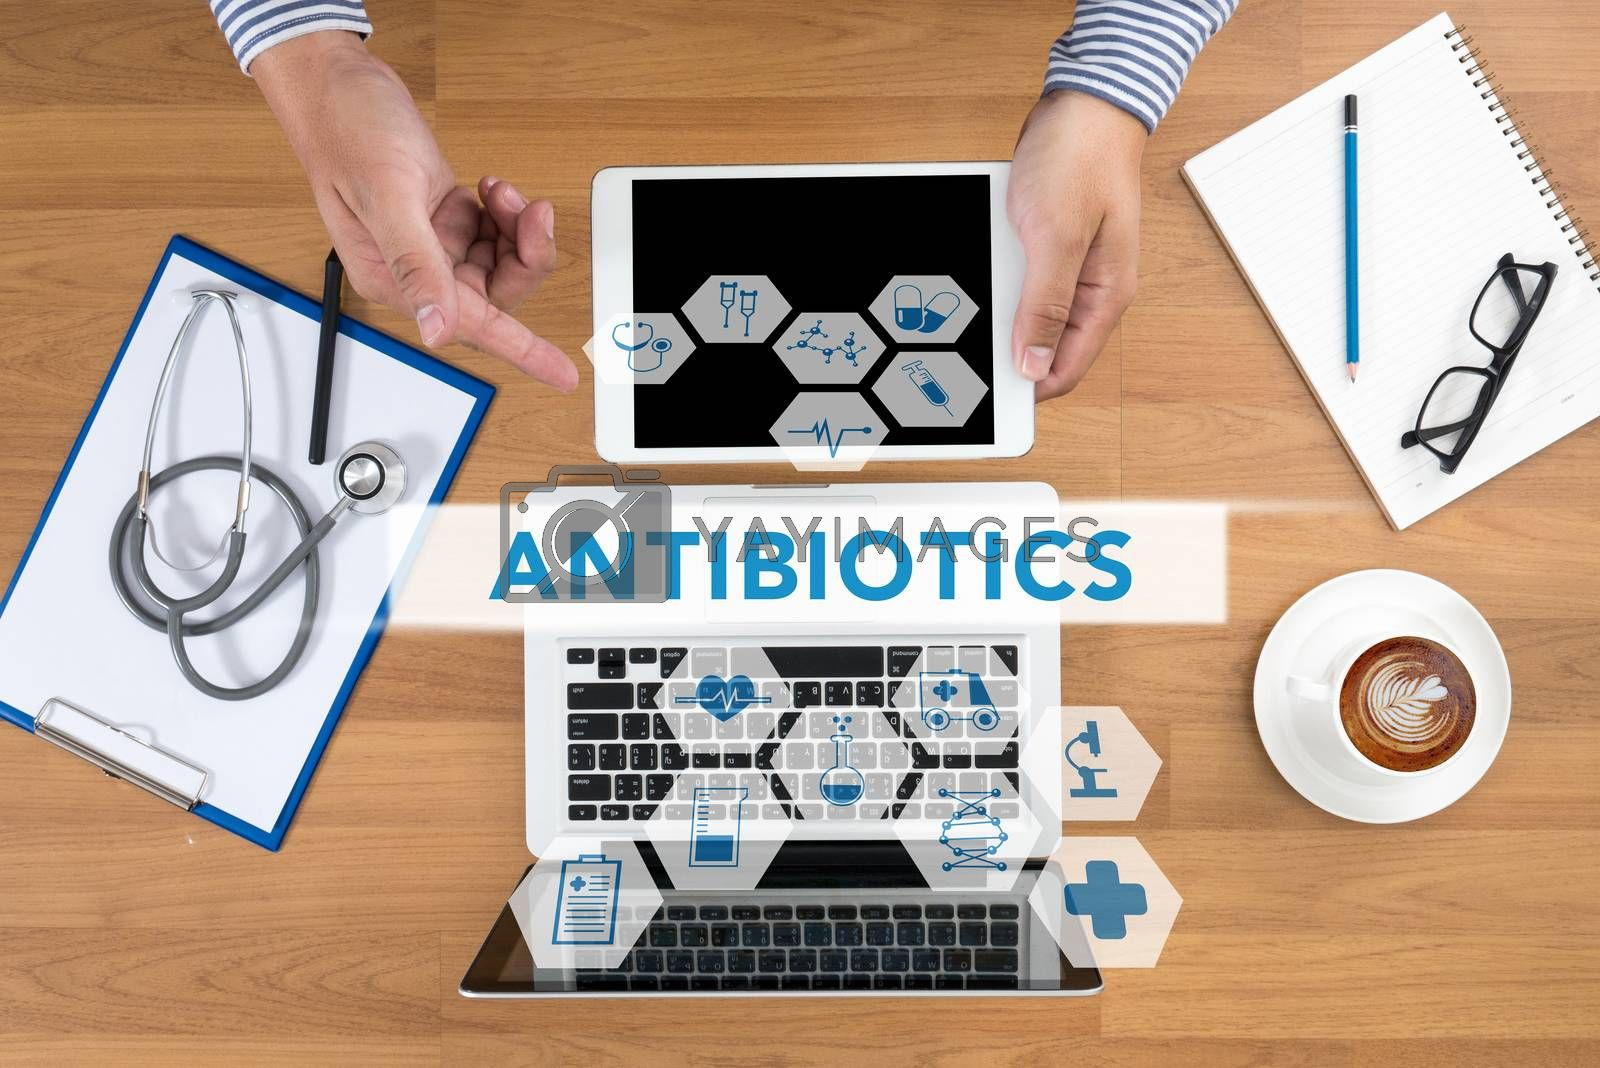 ANTIBIOTICS CONCEPT Doctor touch digital tablet, desktop with medical equipment on background, top view, coffee